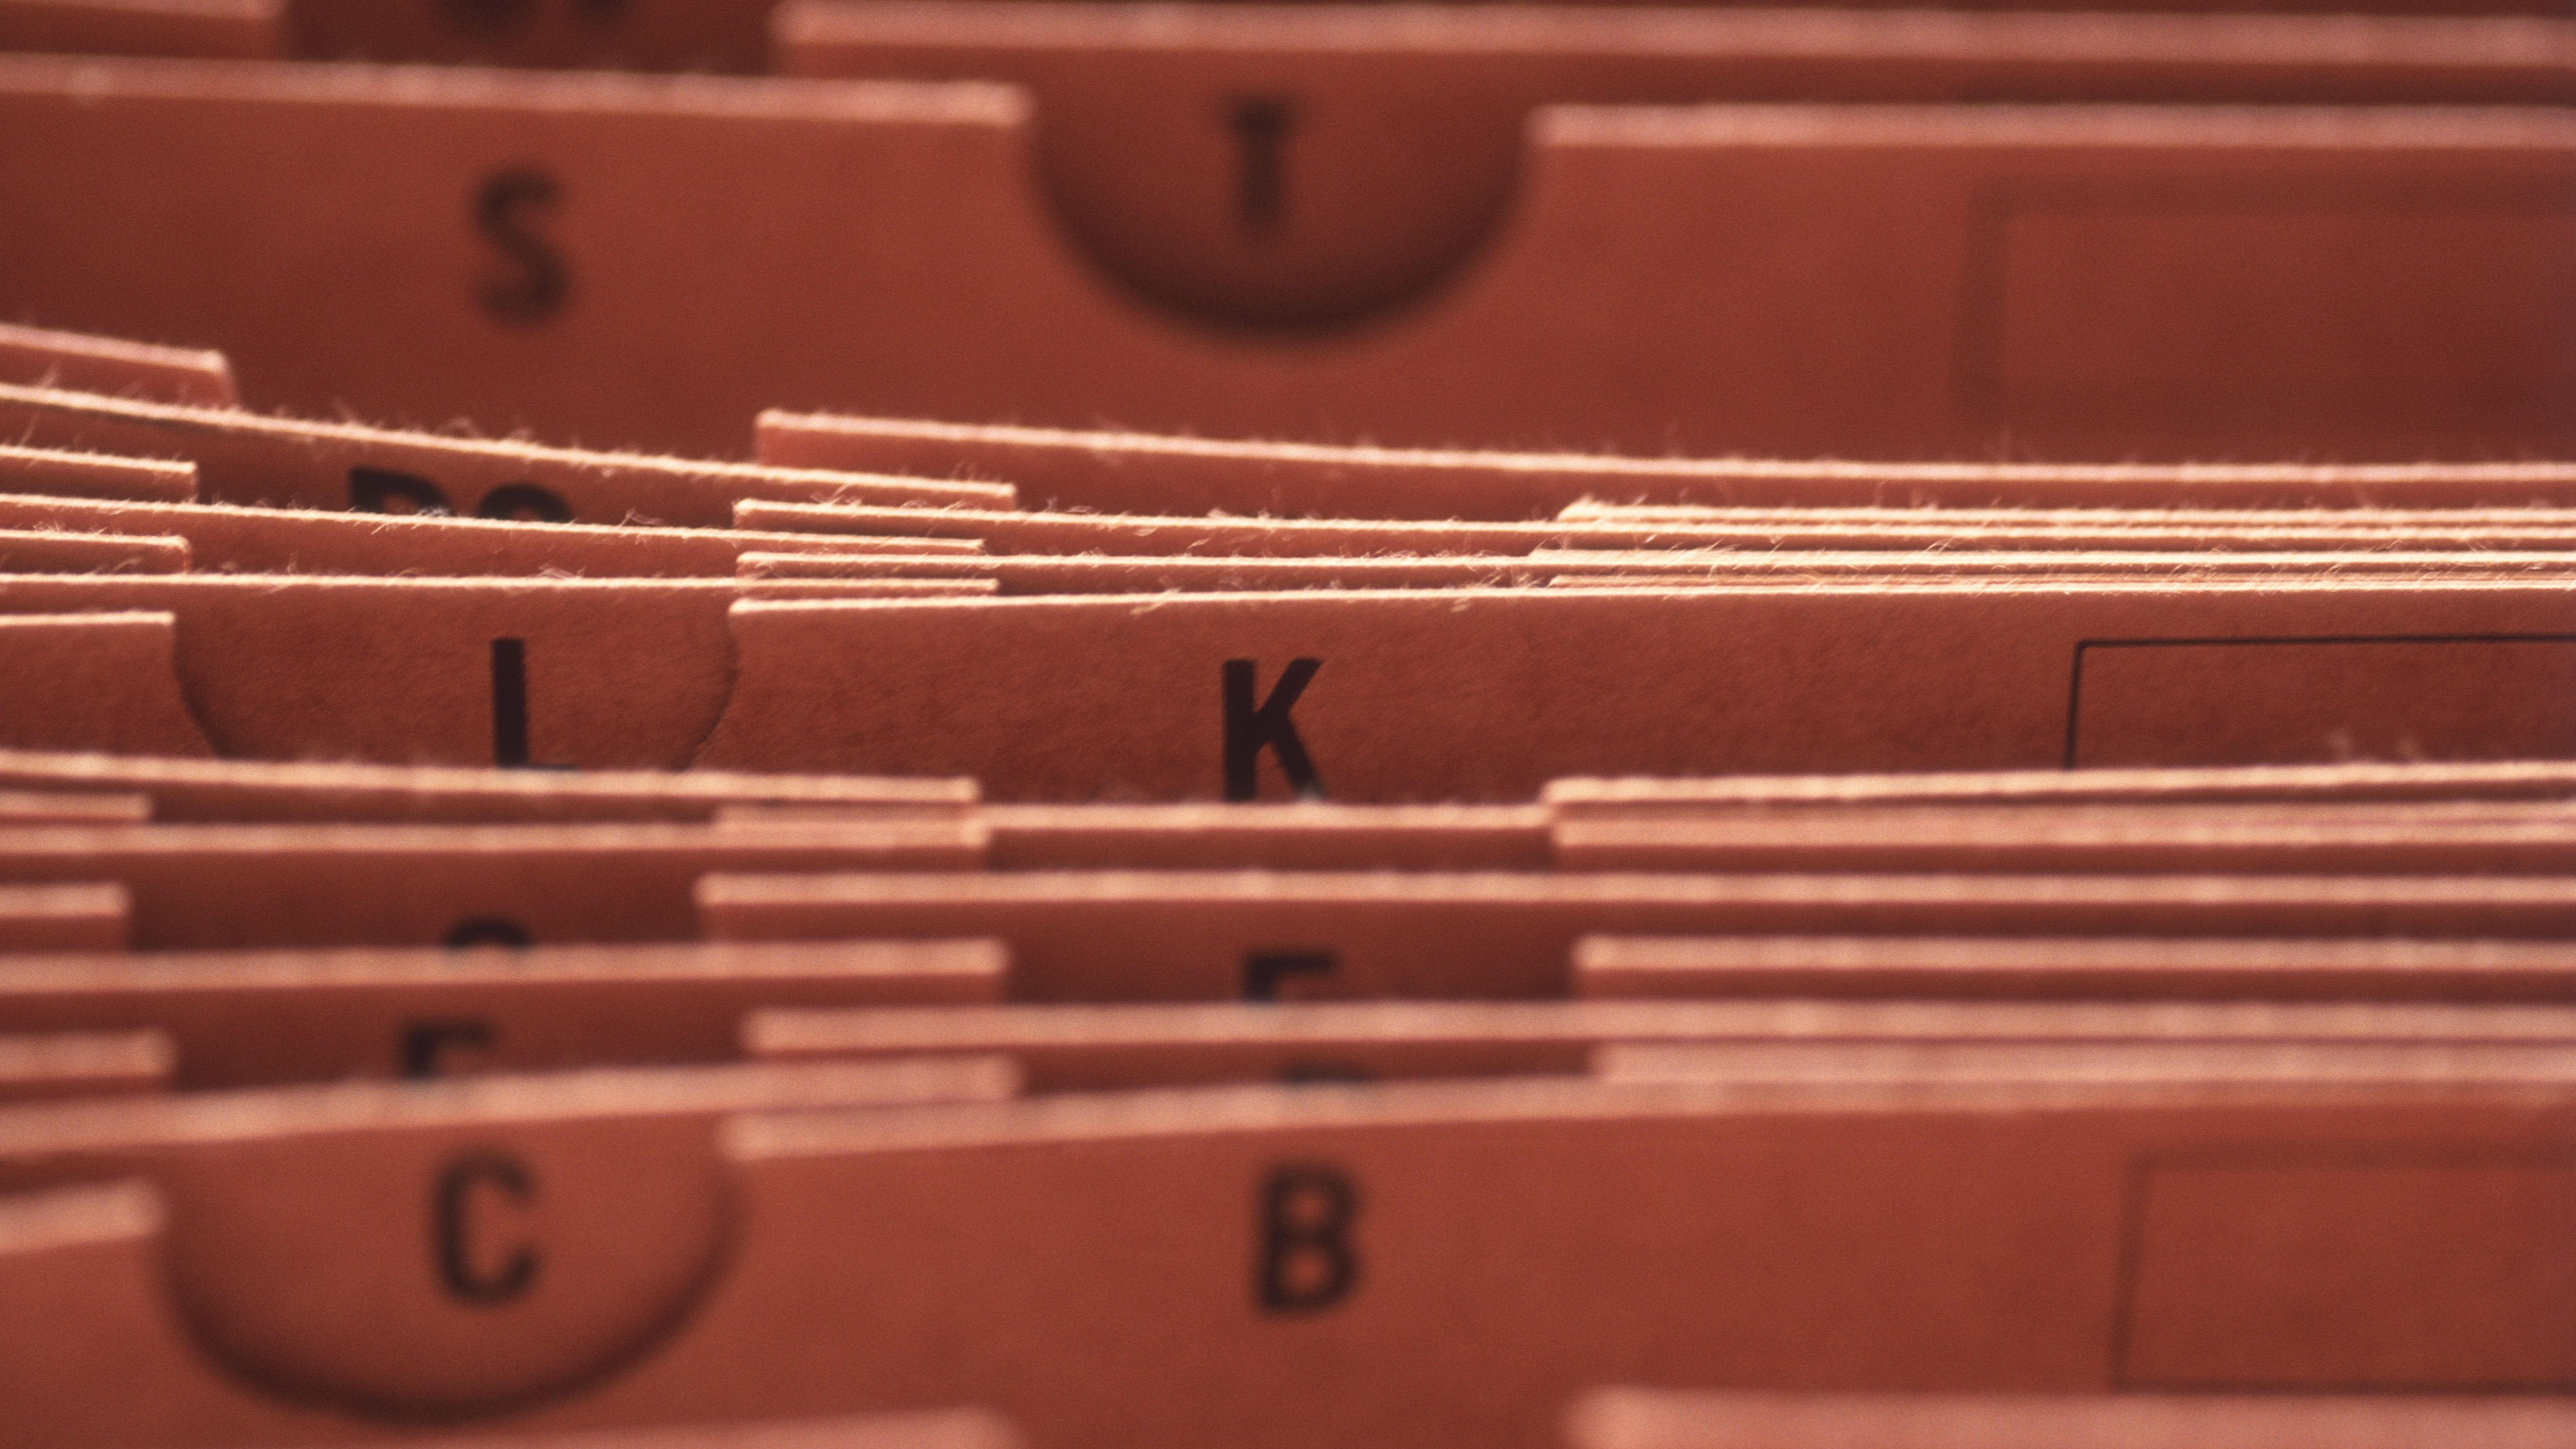 How To Alphabetize Mailing Labels In Word